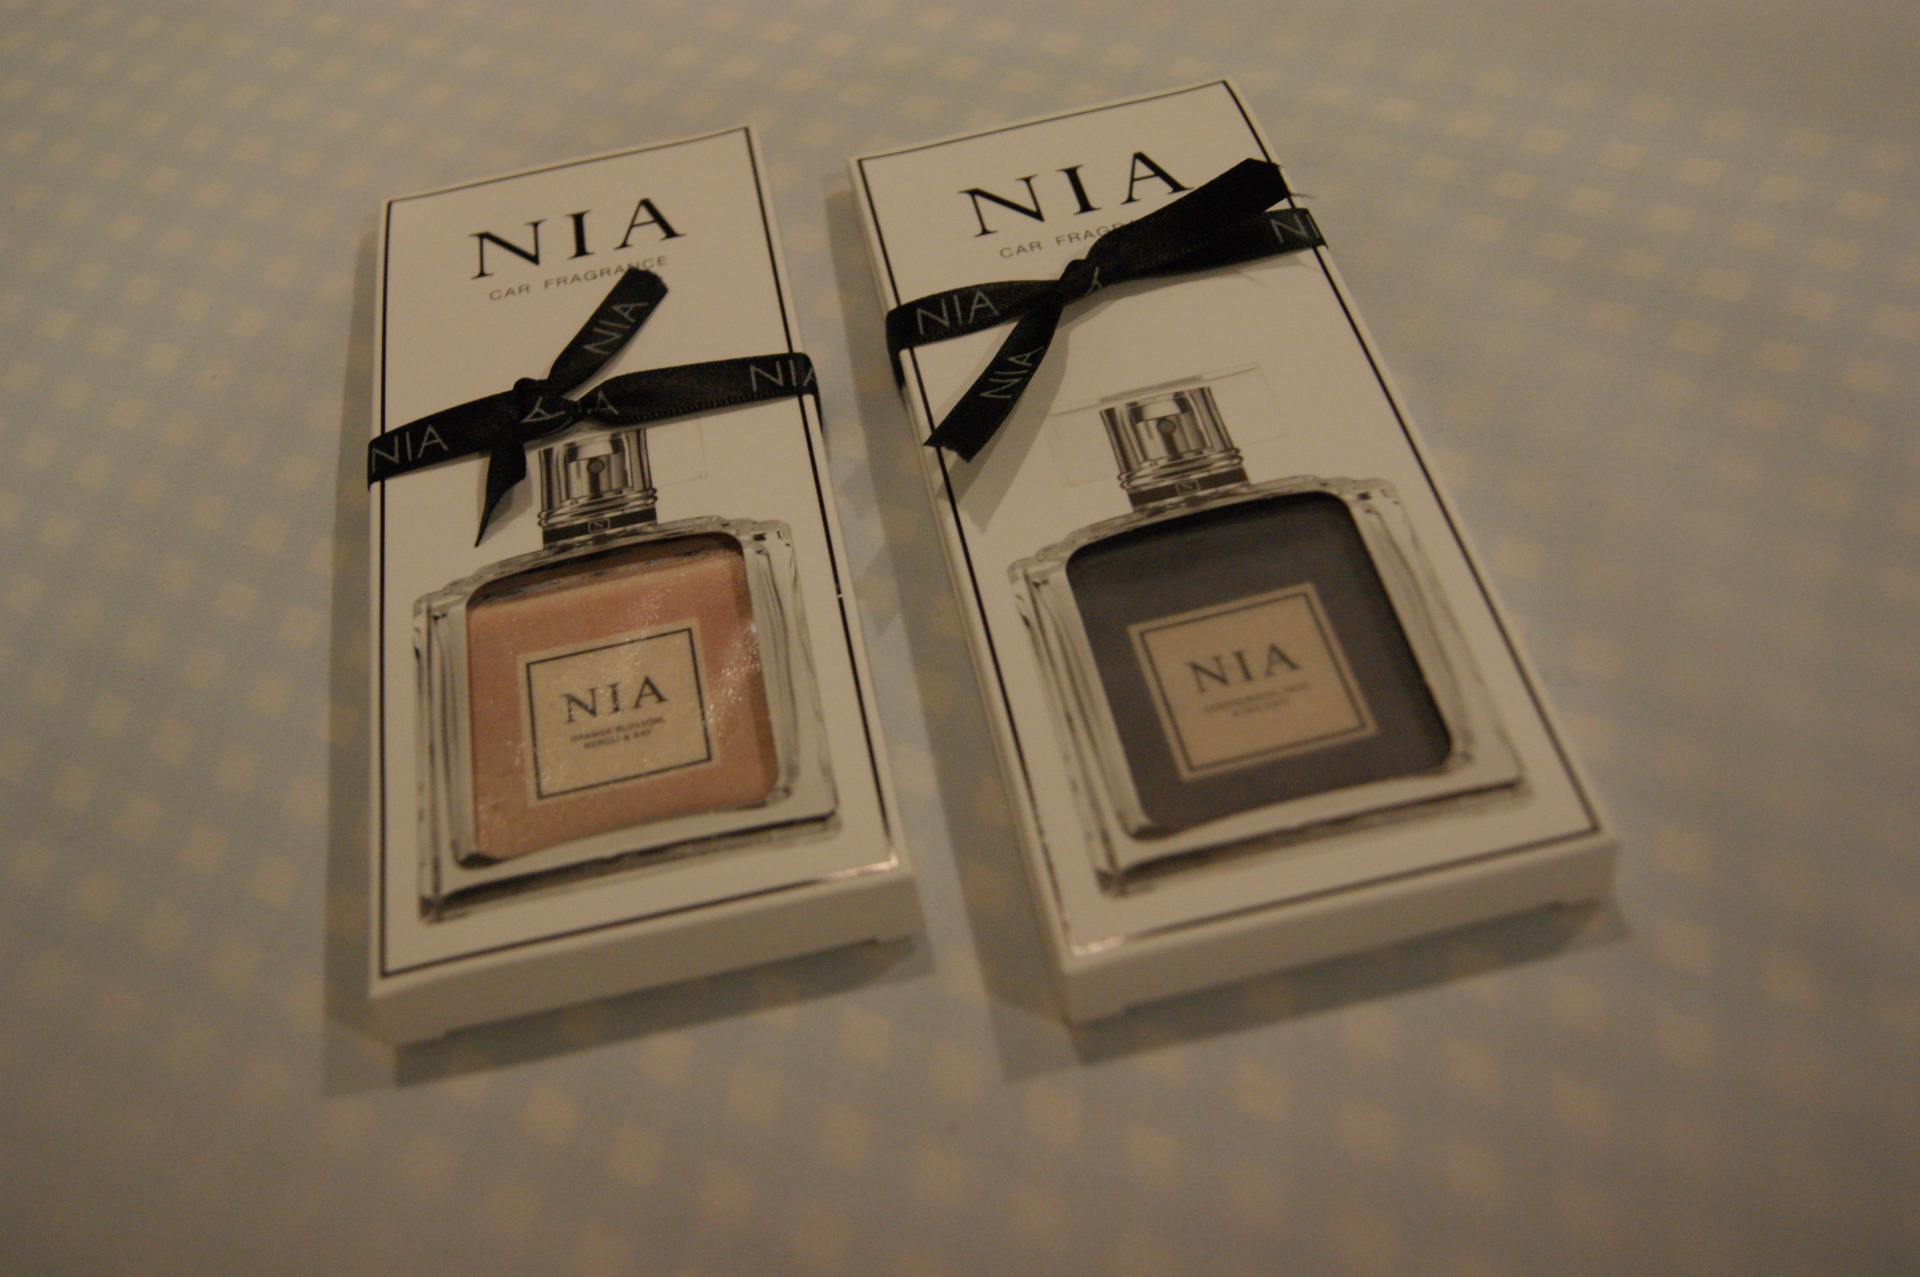 NIA - Car Fragrances